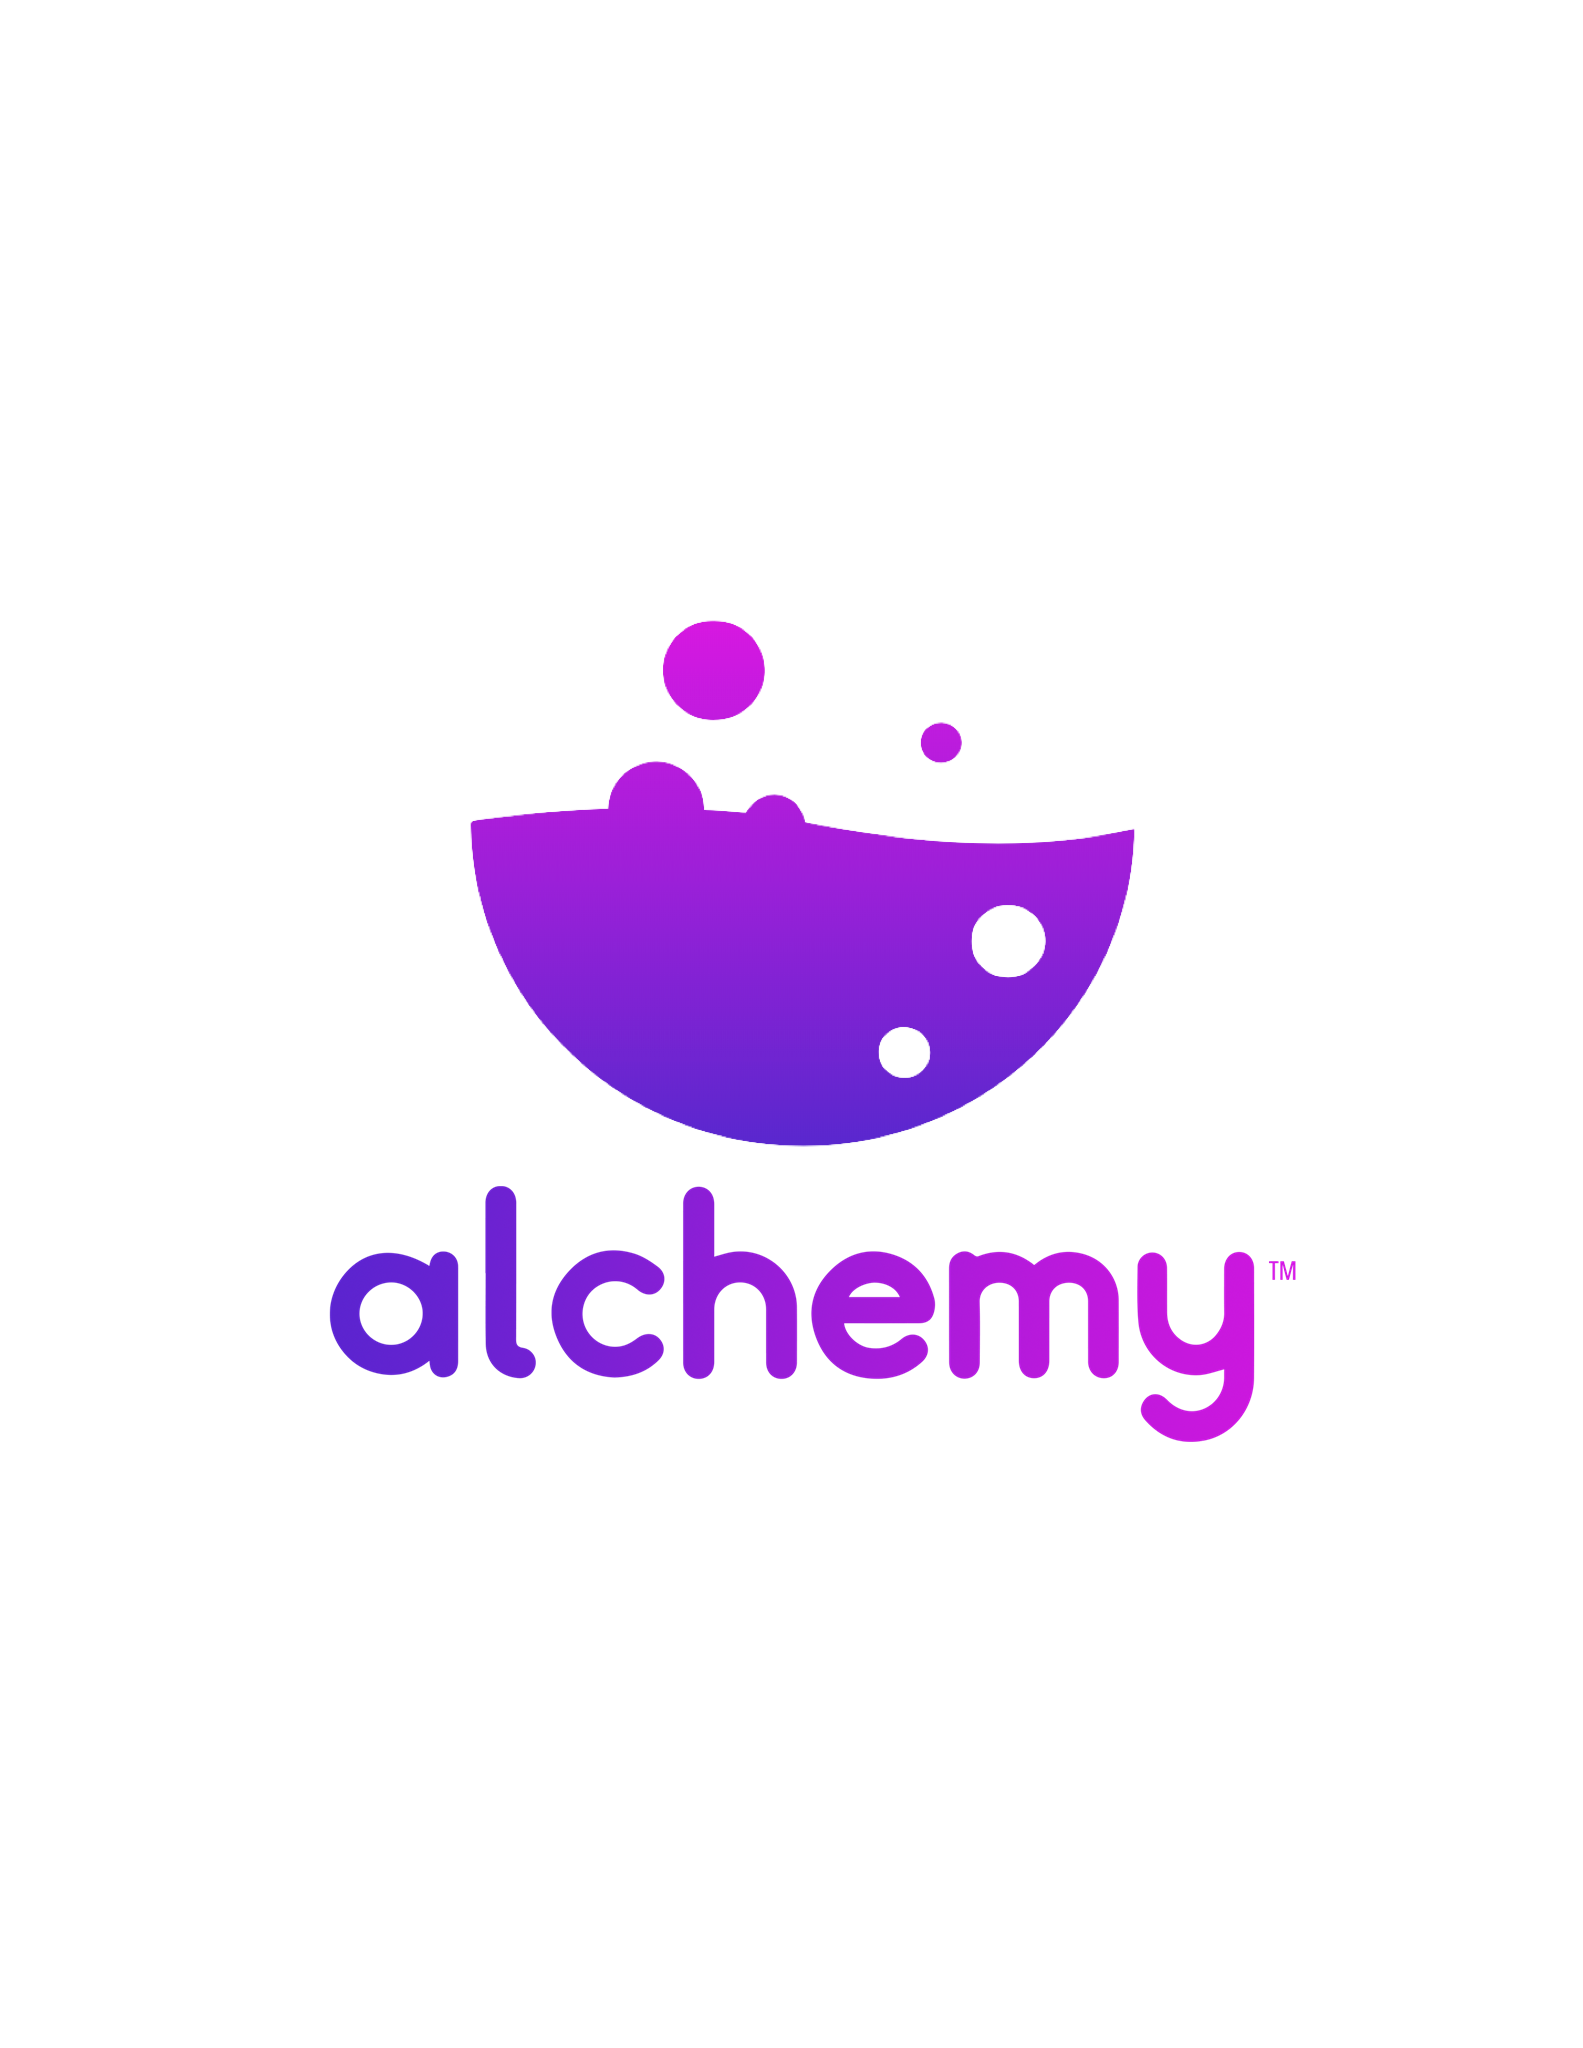 Go to the profile of Alchemy Coin